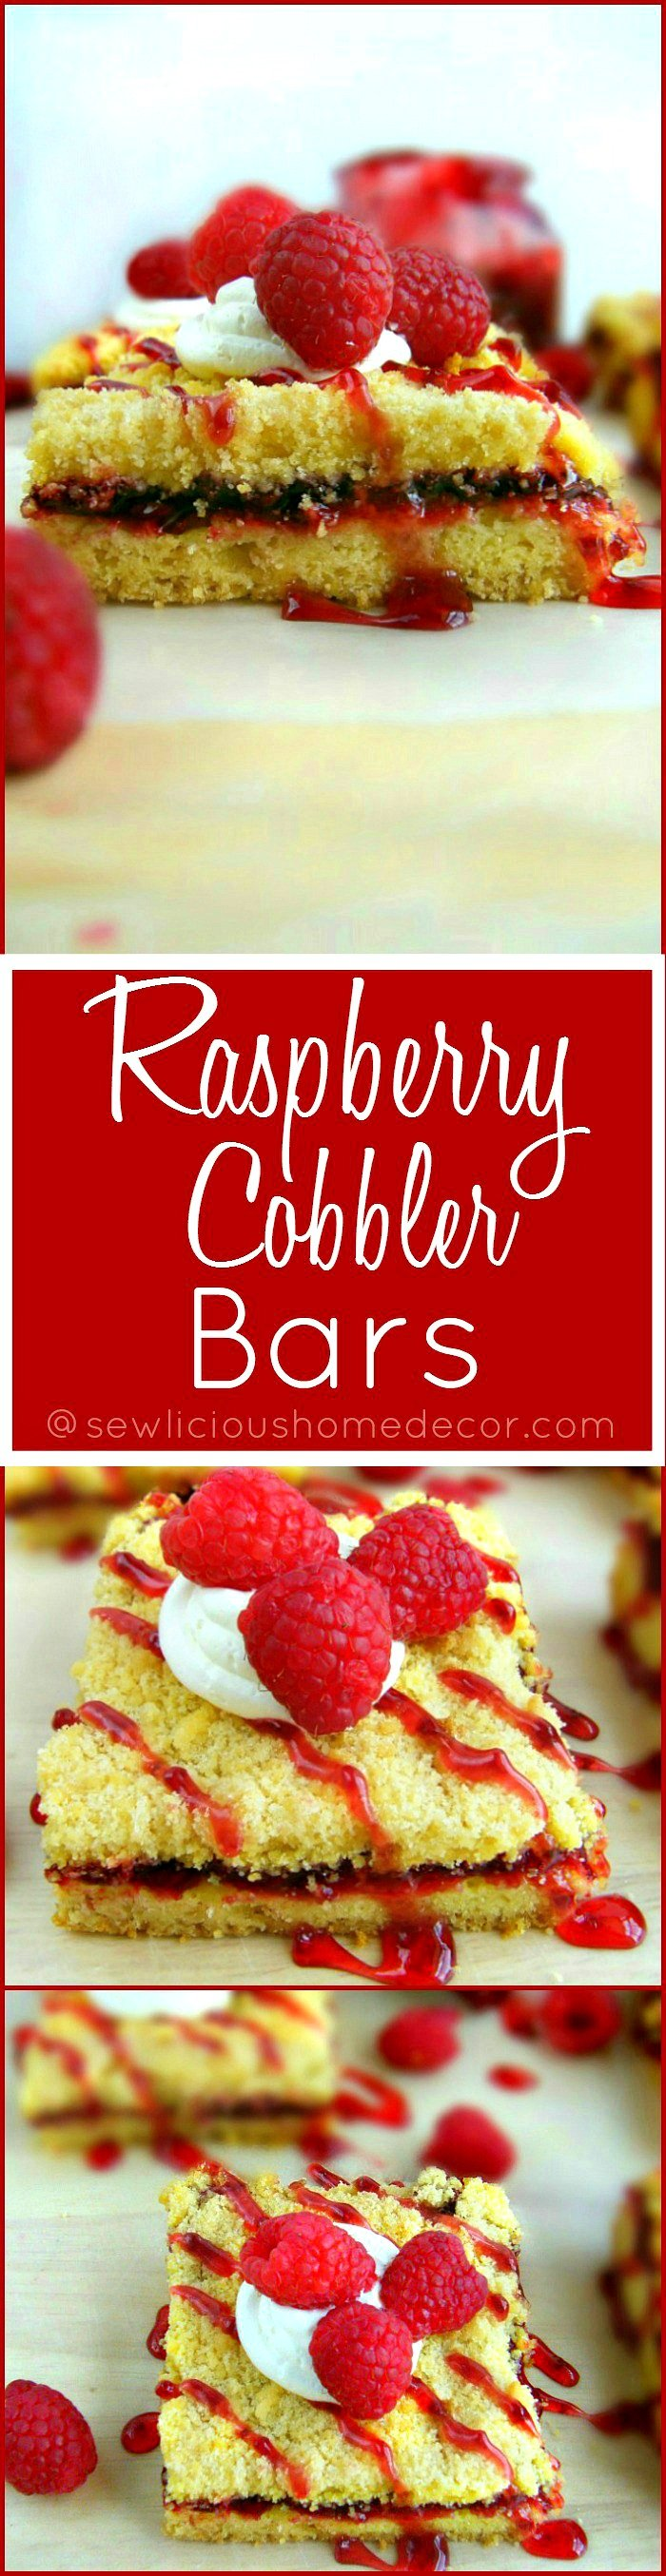 Best Quick and Easy Raspberry Cobbler Bars made with a yellow cake mix. Pinterest